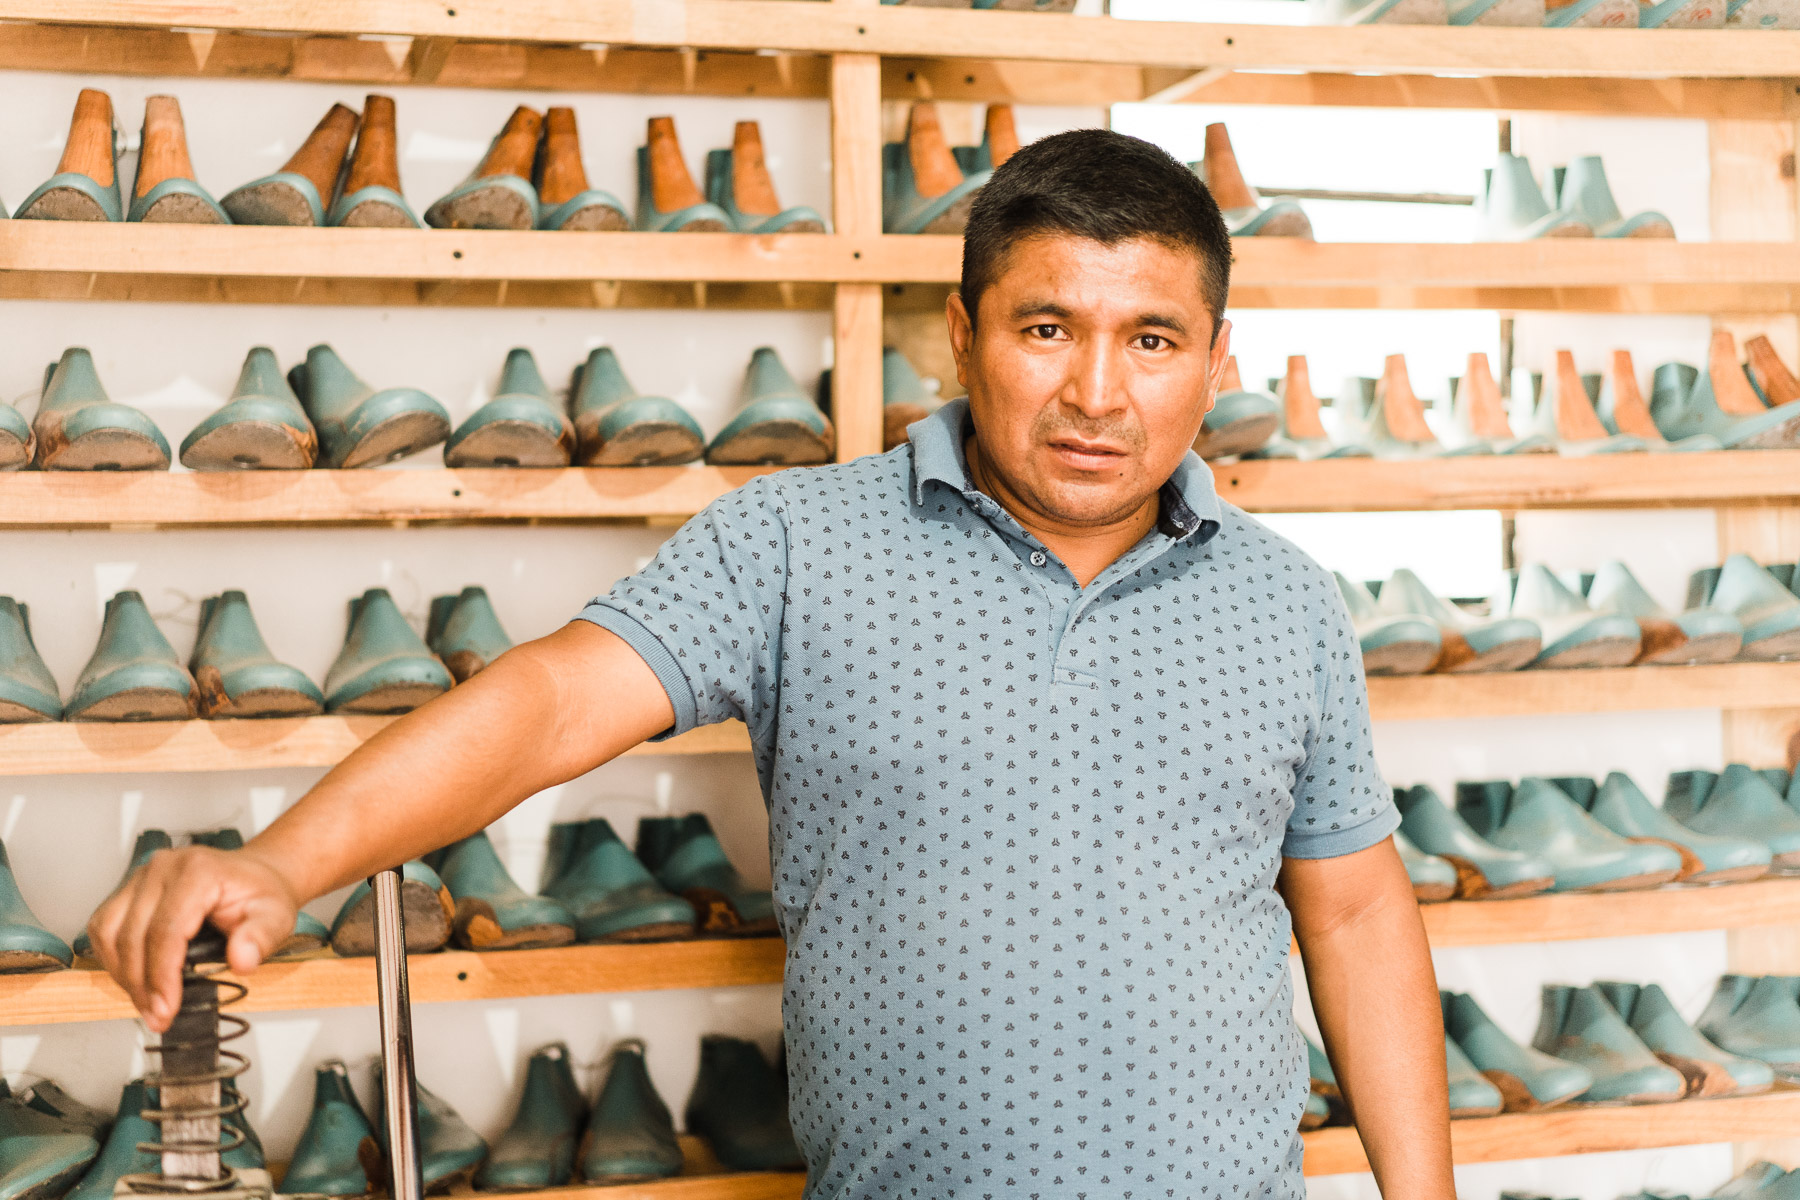 - Two generations passed in which in the town of Pastores - if it's not 100%, I think at least 95% - of the population knew how to make boots. The entire town of Pastores knew how to make boots.- Horacio, Shop Manager, Adelante